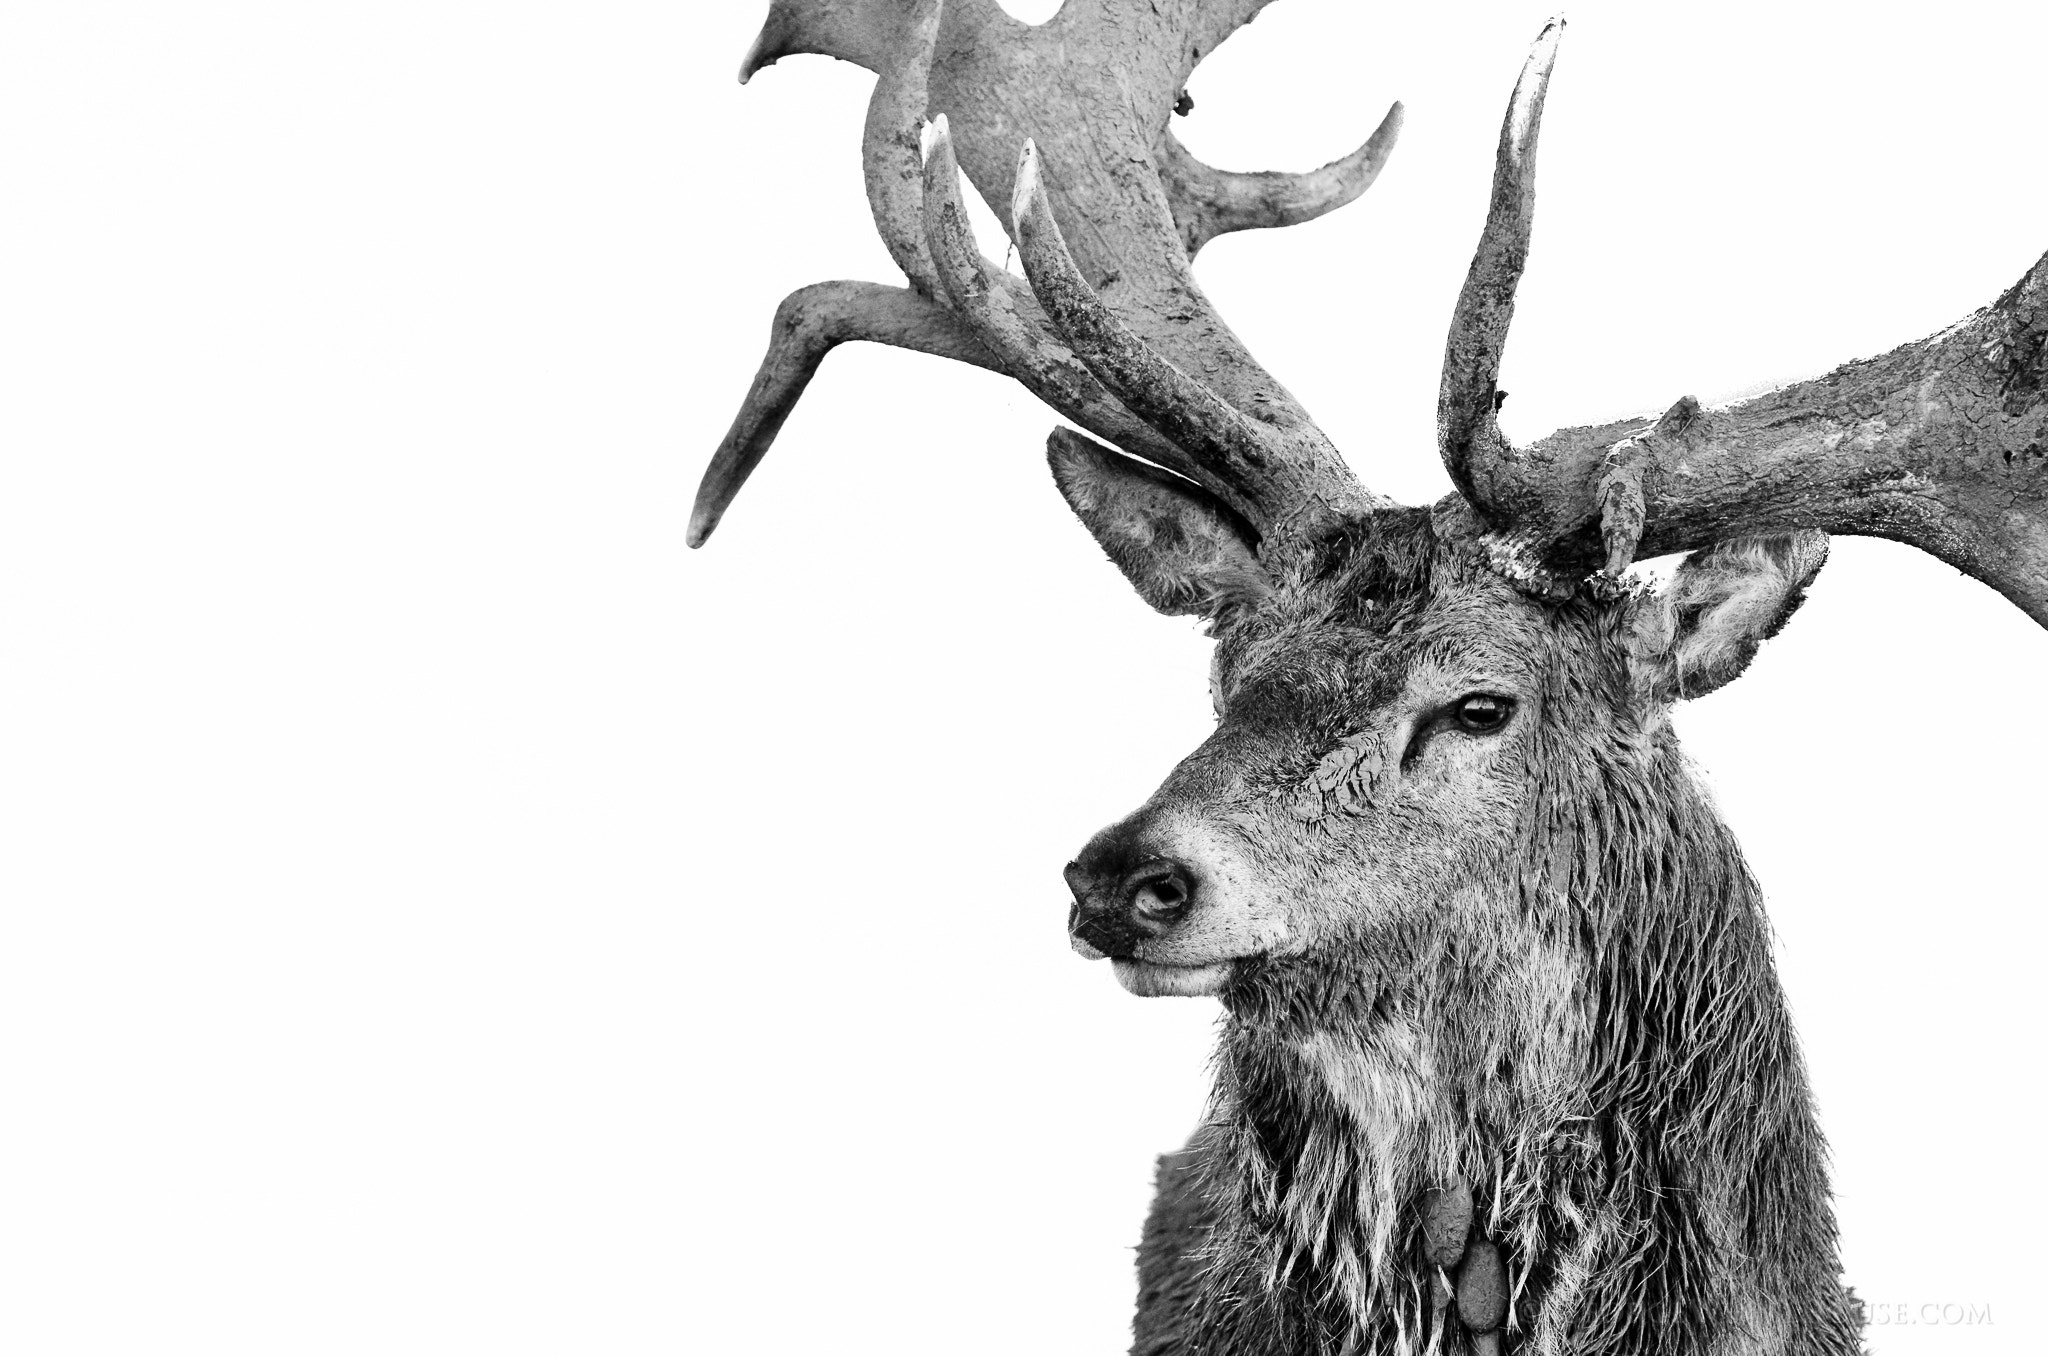 Photograph Posing Red Deer - High Key Portrait by George Wheelhouse on 500px